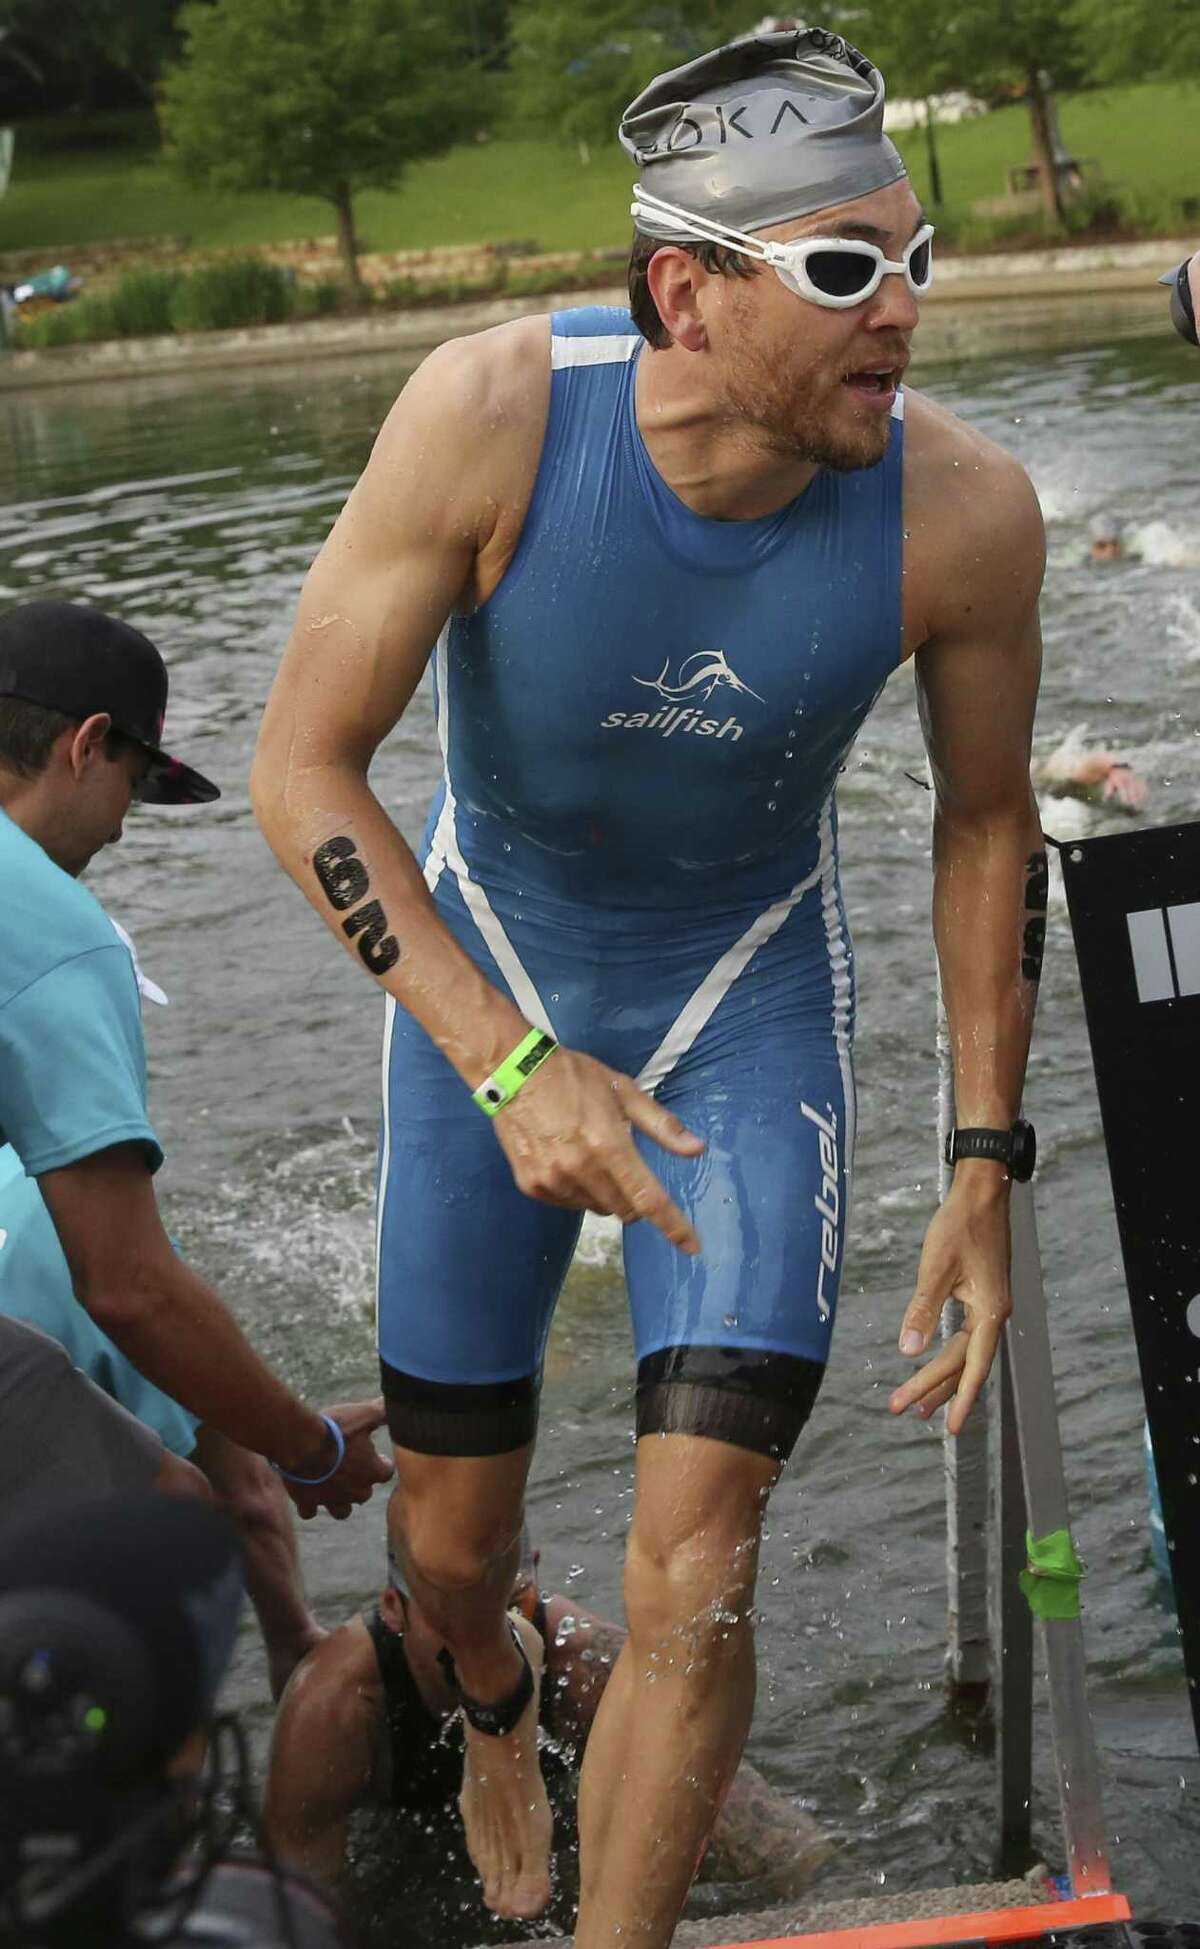 Professional athlete Johann Ackermann comes out of the water while competing in the 2018 Memorial Hermann IRONMAN® North American Championship Texas Triathlon on Saturday, April 28, 2018, in The Woodlands. The IRONMAN features 2.4 miles of swimming, 112 miles of biking and 26.2 miles of running. ( Yi-Chin Lee / Houston Chronicle )